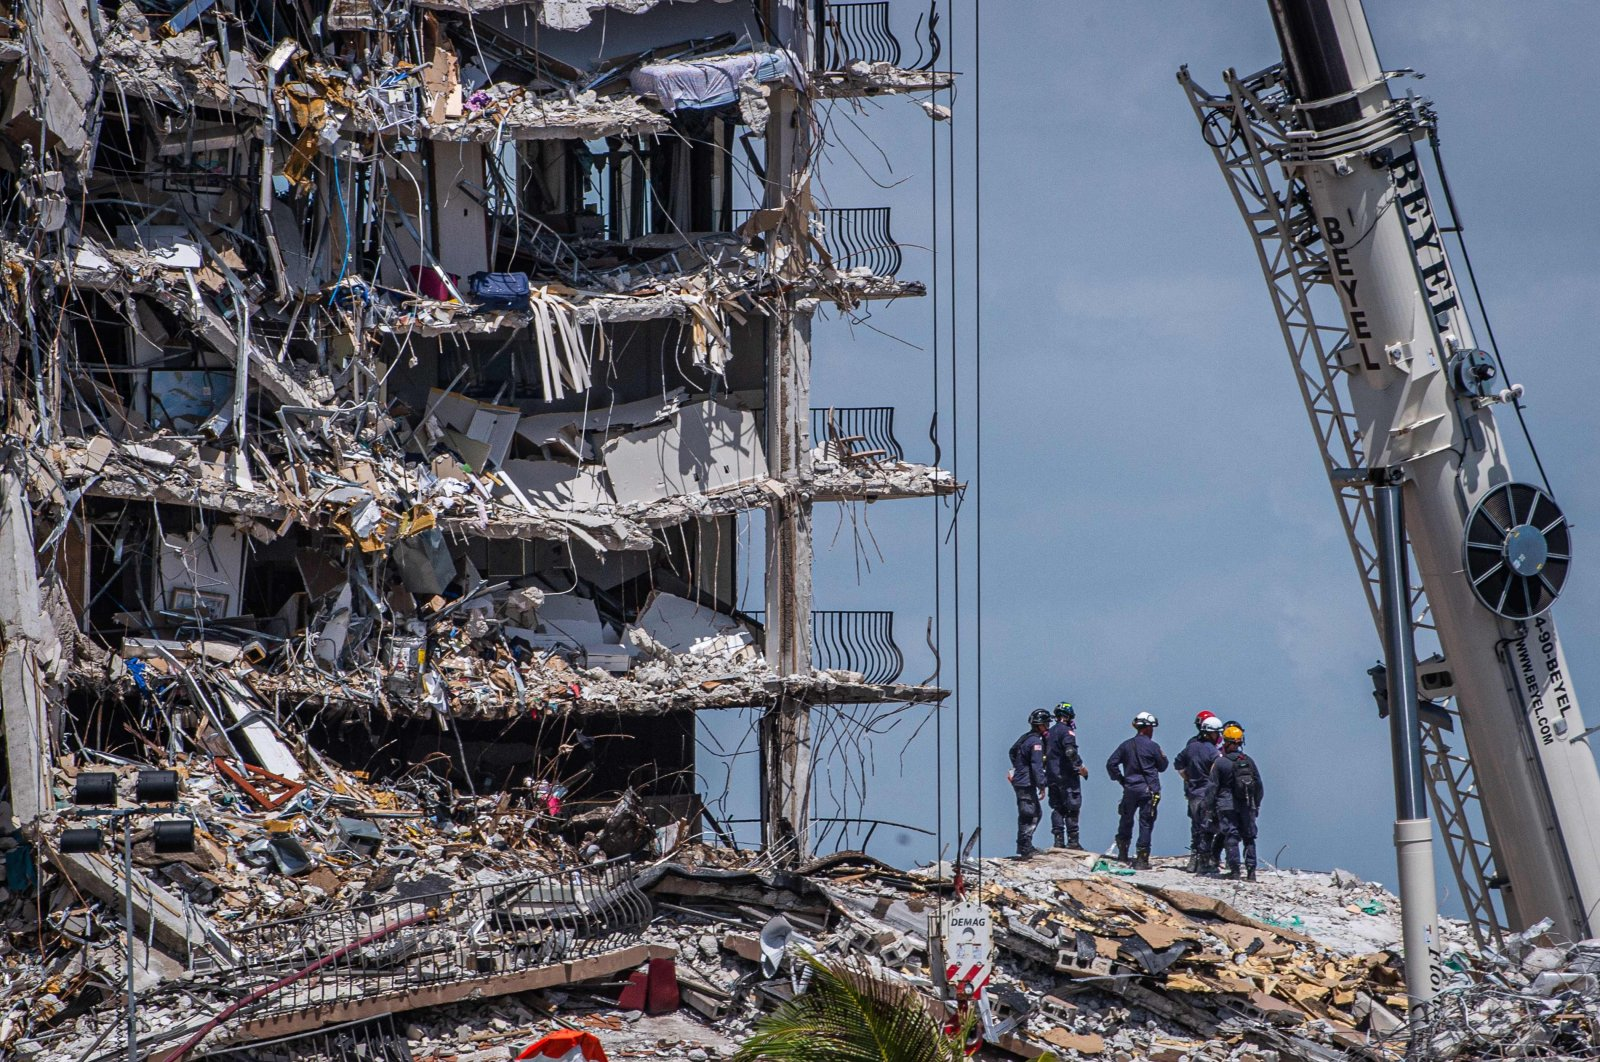 Members of the South Florida Urban Search and Rescue team look for possible survivors in the partially collapsed 12-story Champlain Towers South condo building in Surfside, Florida, U.S., June 27, 2021. (AFP Photo)